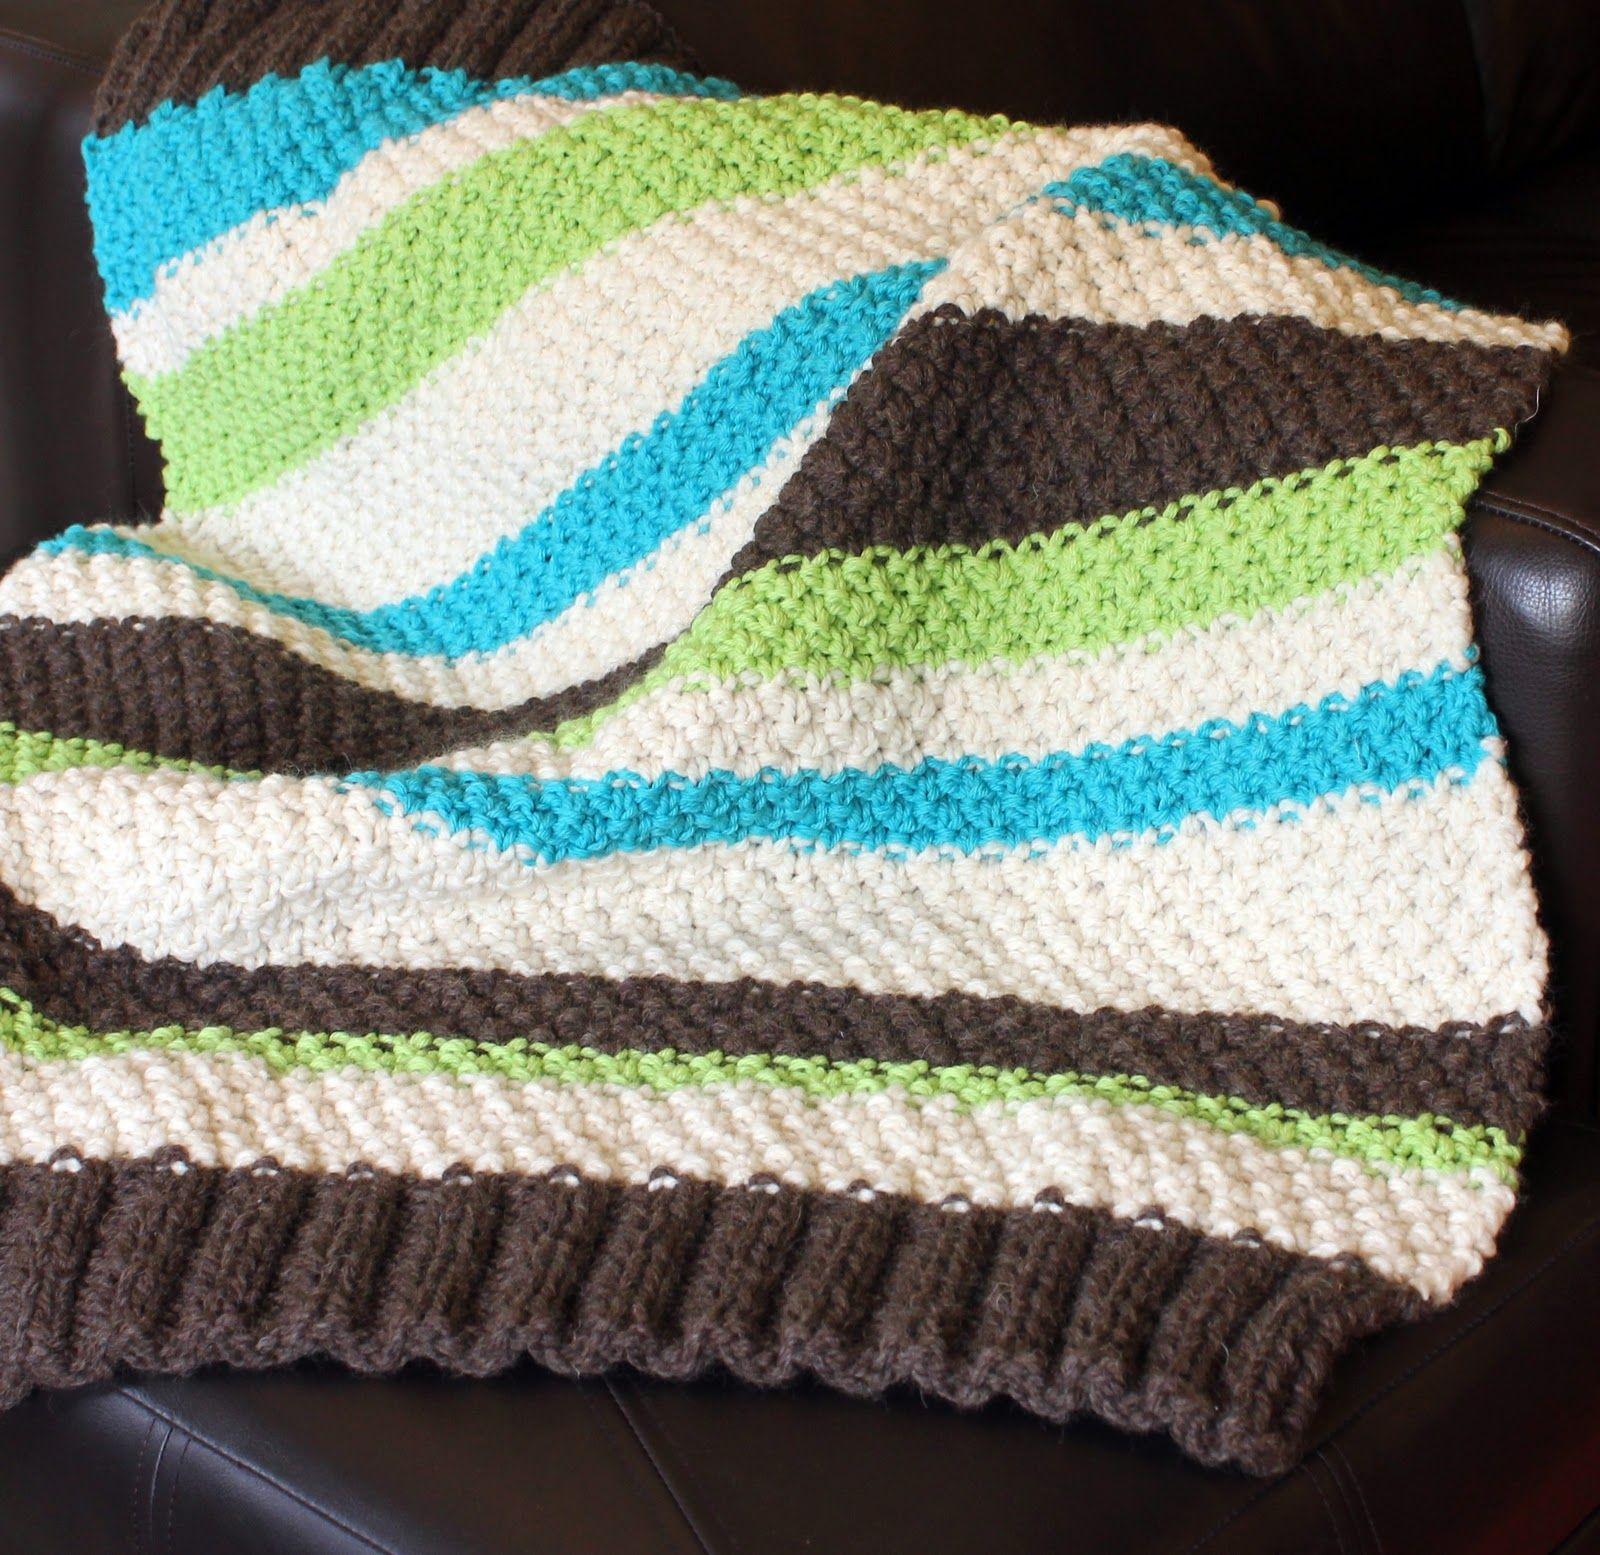 Easy Baby Blanket Knitting Pattern for Beginners - with Free ...